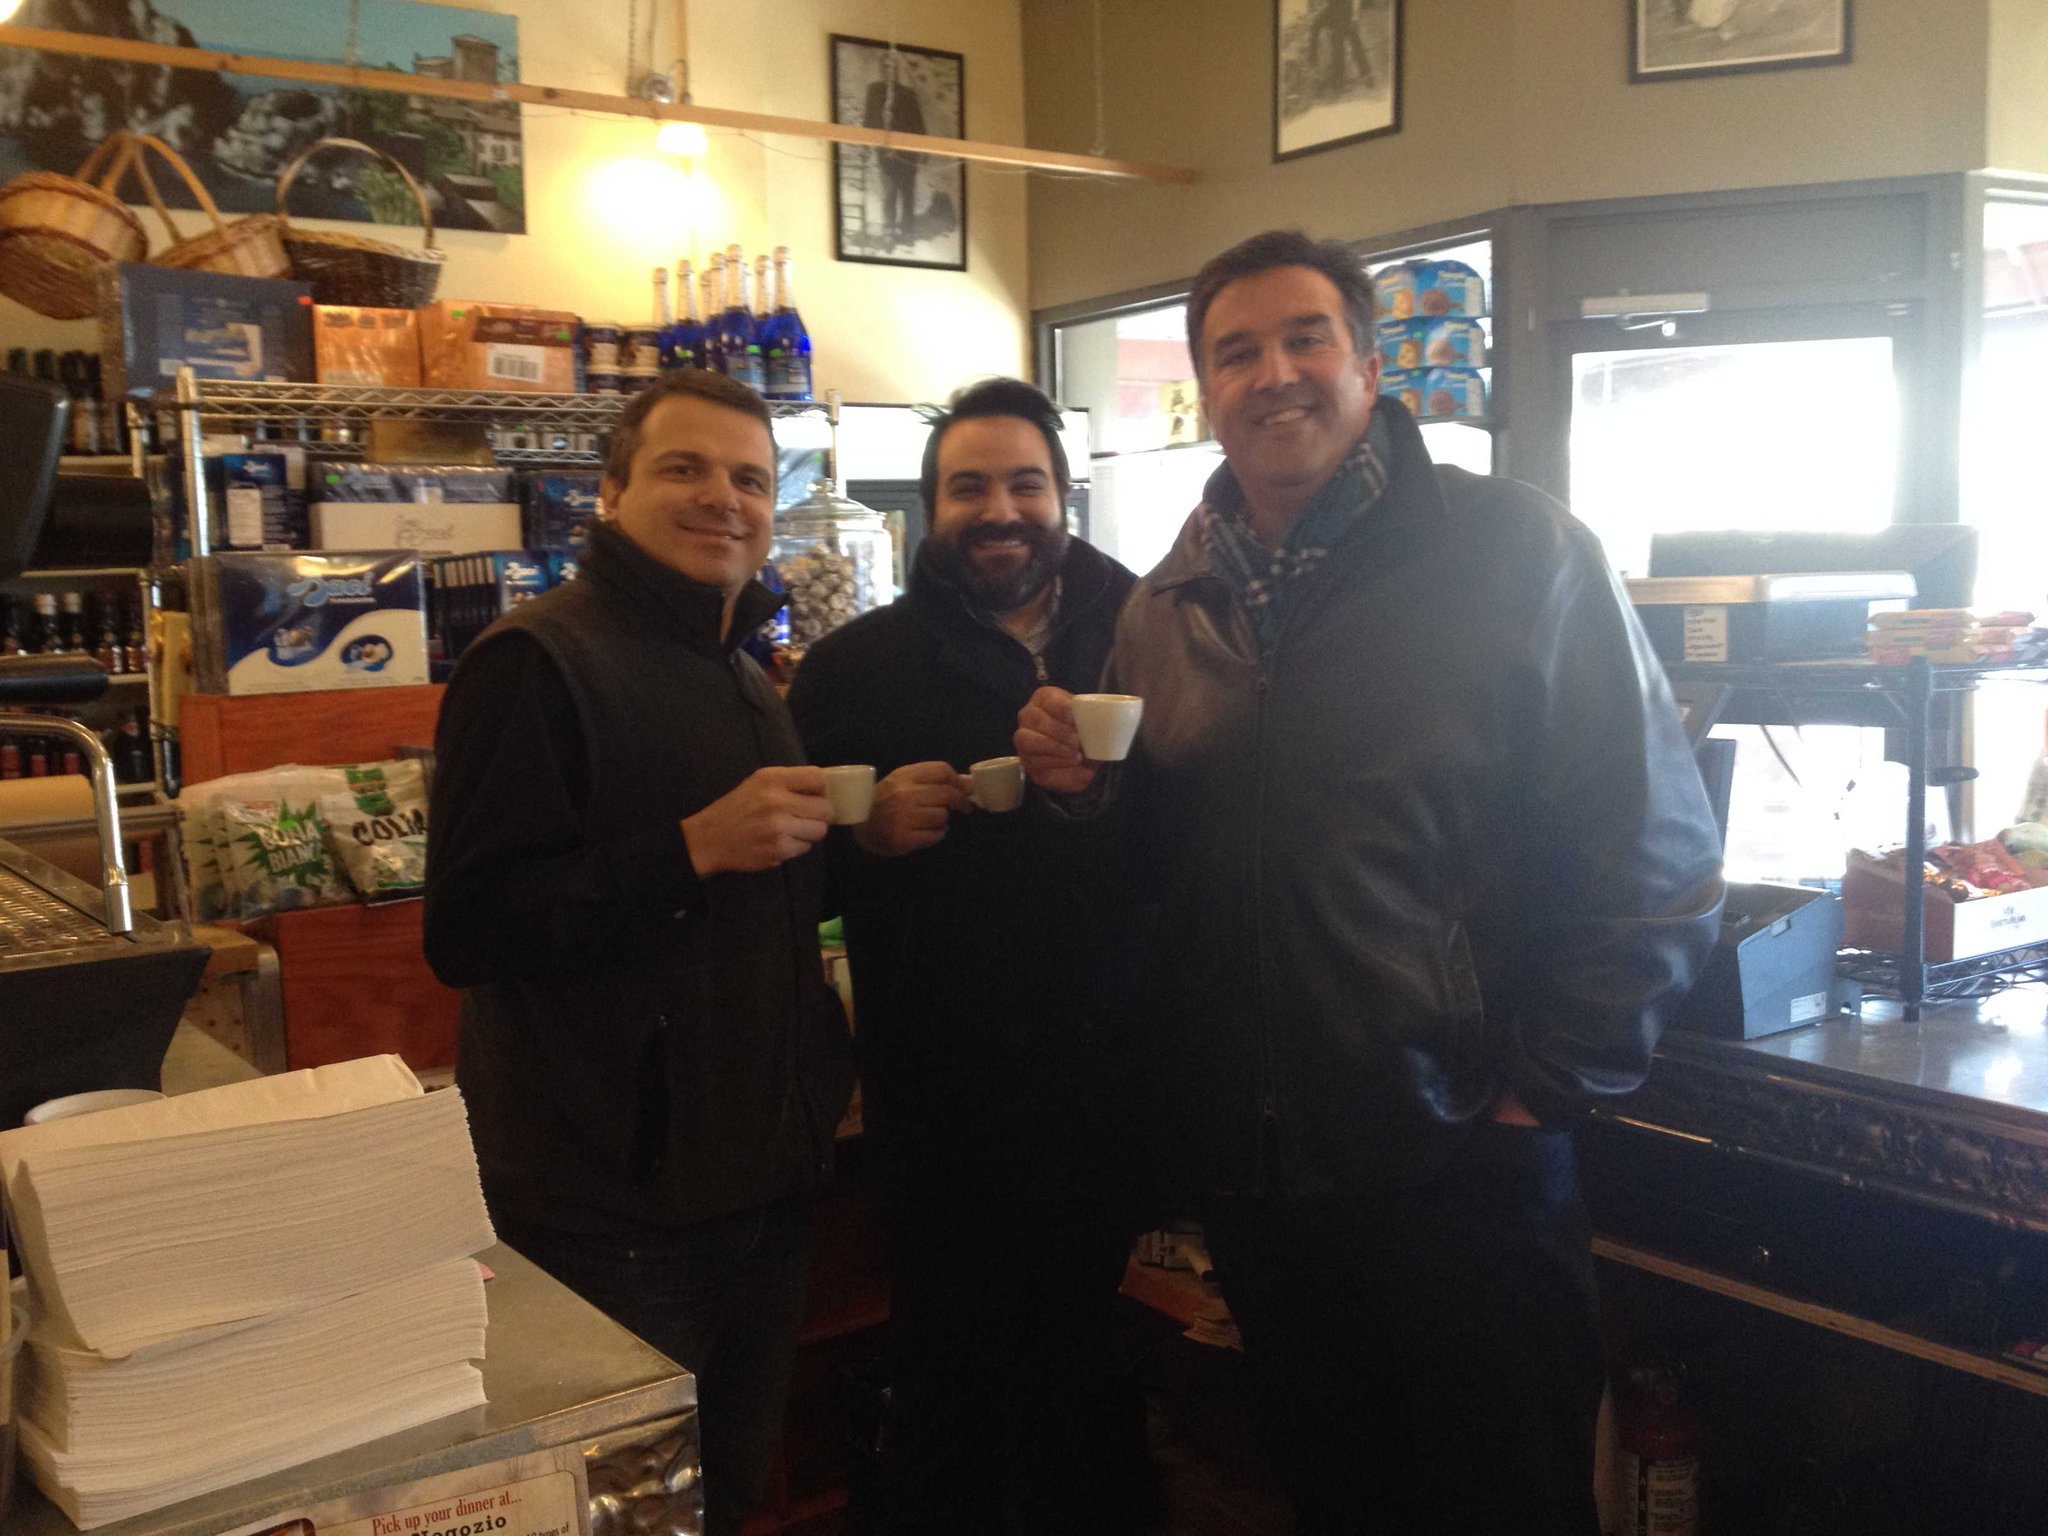 It was great to get a chance today to have an espresso with the two busiest guys in #ottawa #fiack http://t.co/XexY8WEqqA